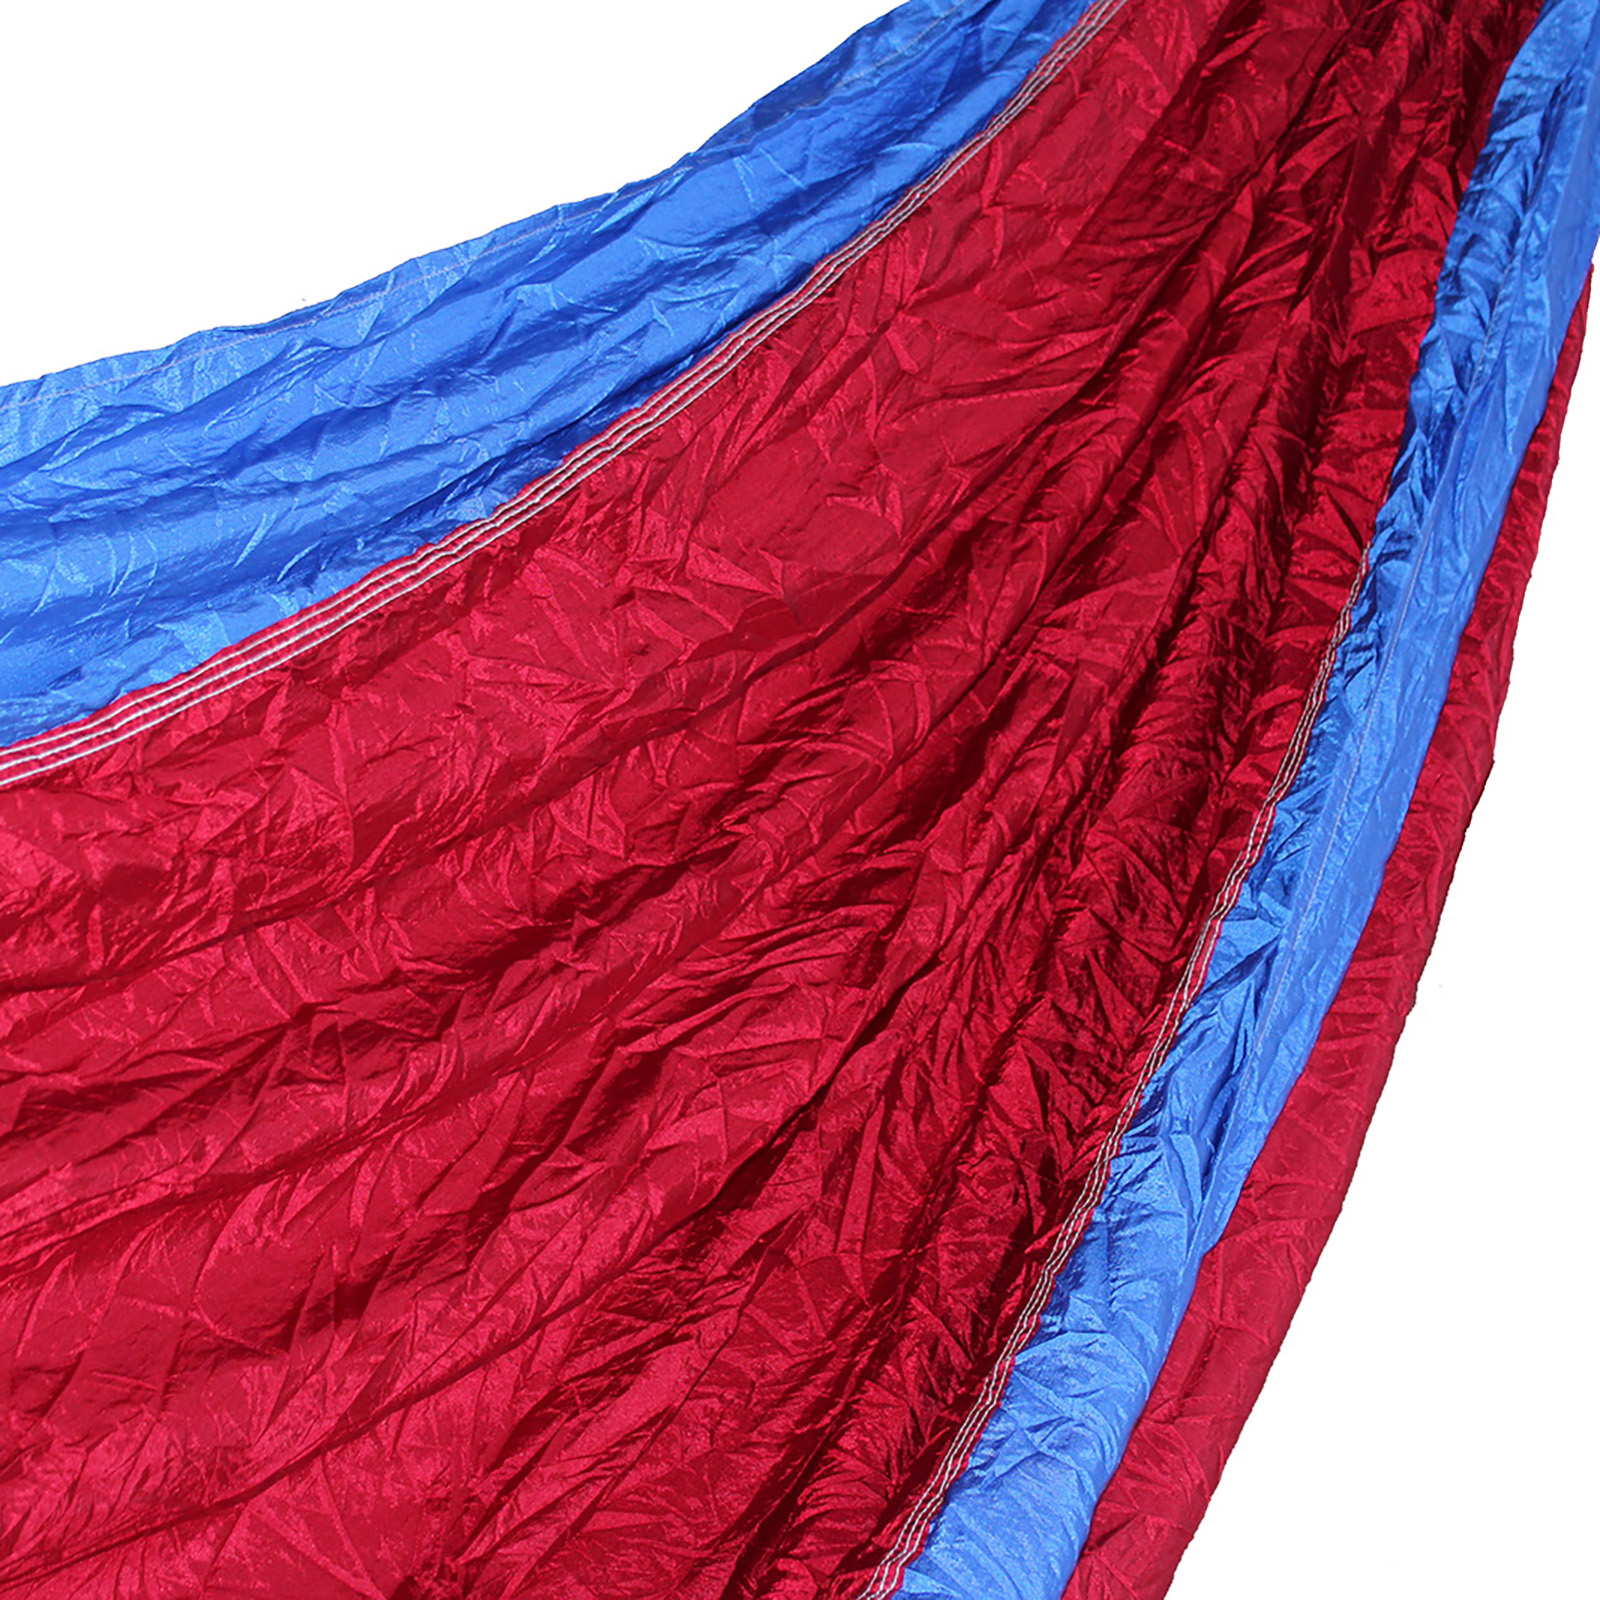 Prime Garden Parachute Hammock Red - Lightweight Breathable Nylon